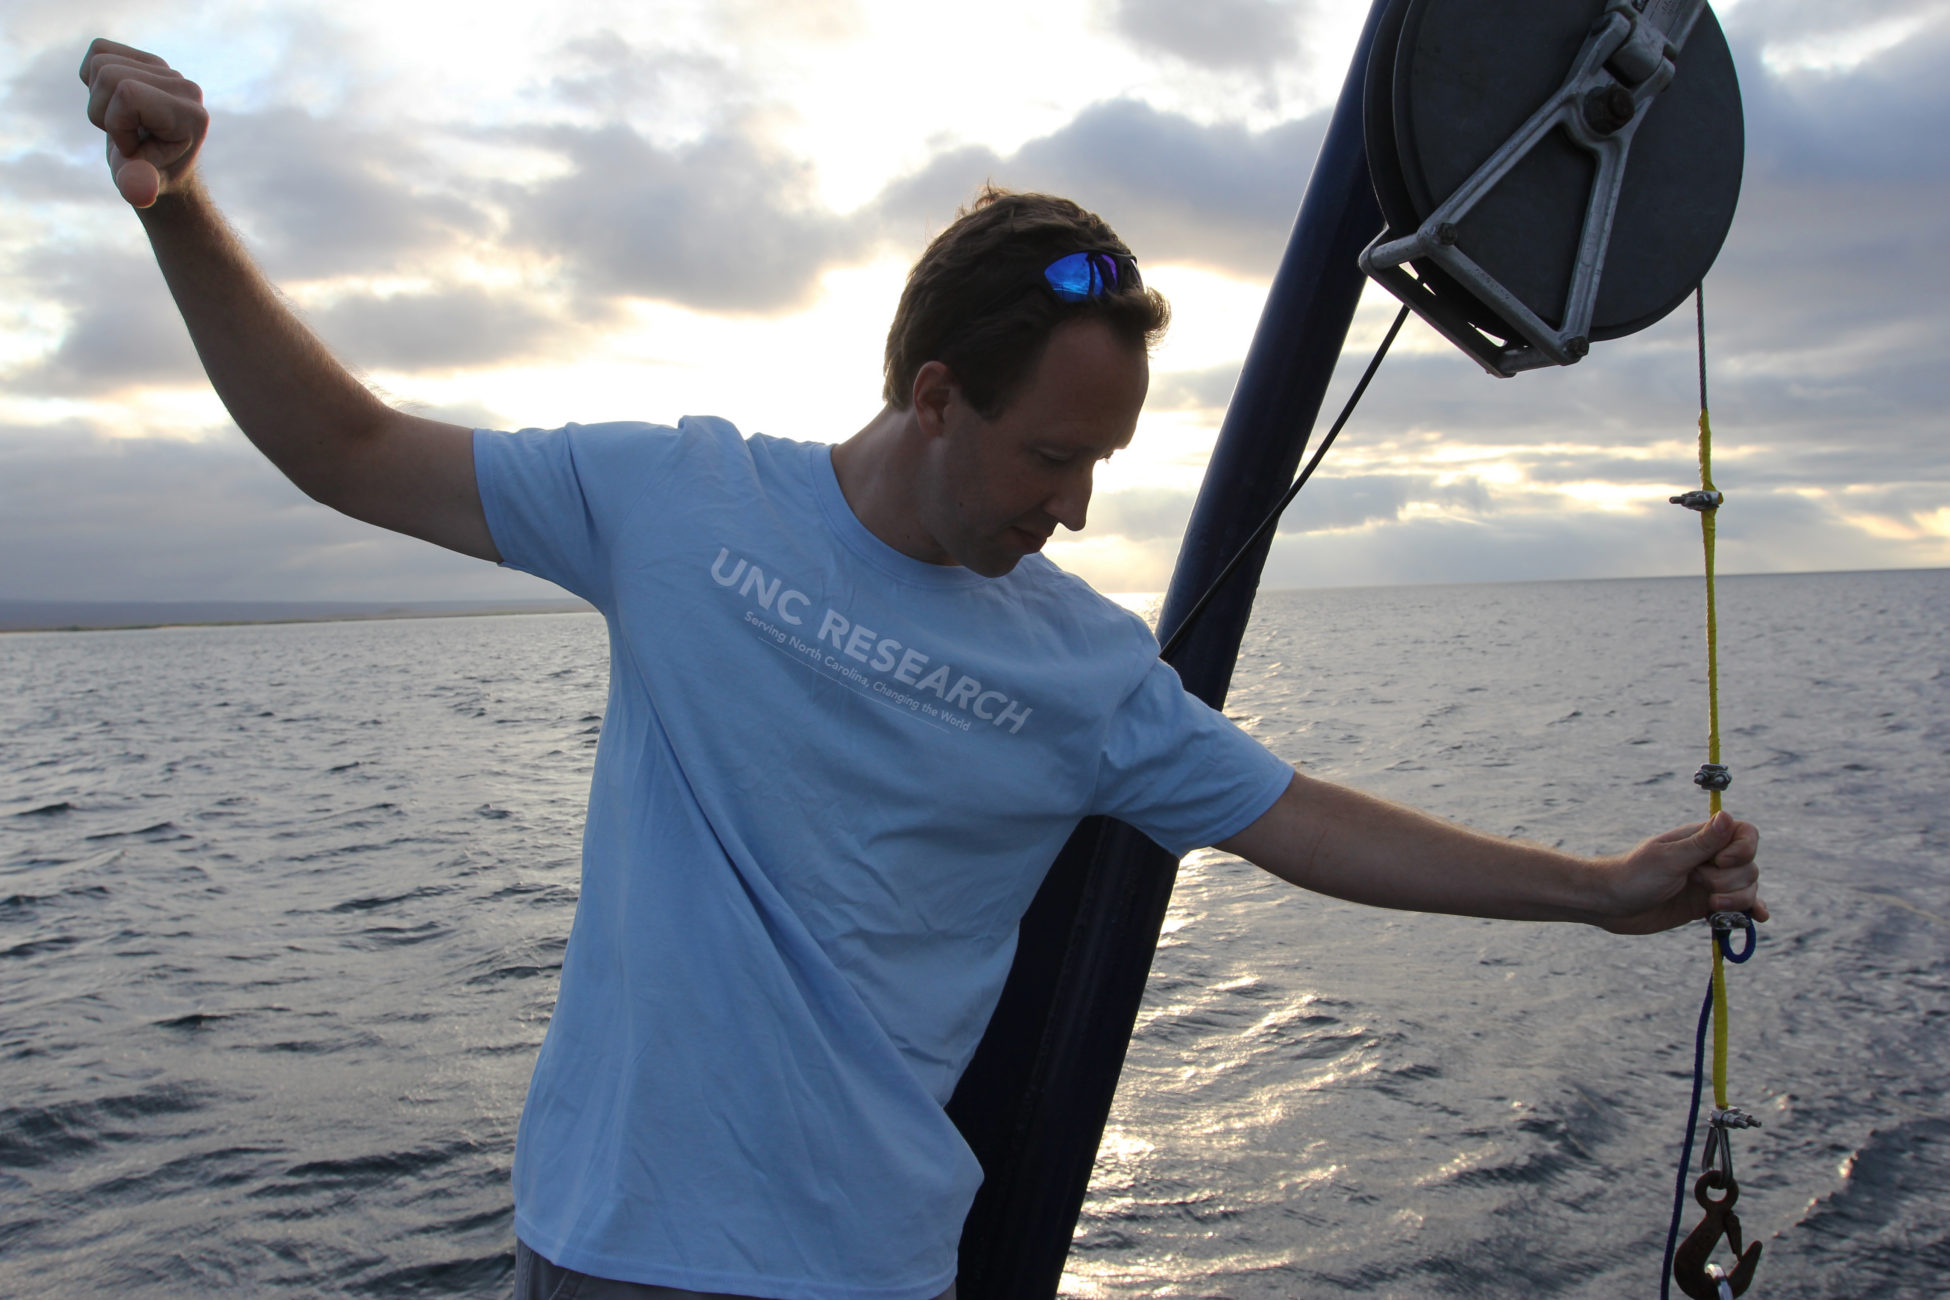 Picture of Scott Gifford on-board the Sierra Negra, giving hand signals while prepping their research equipment.